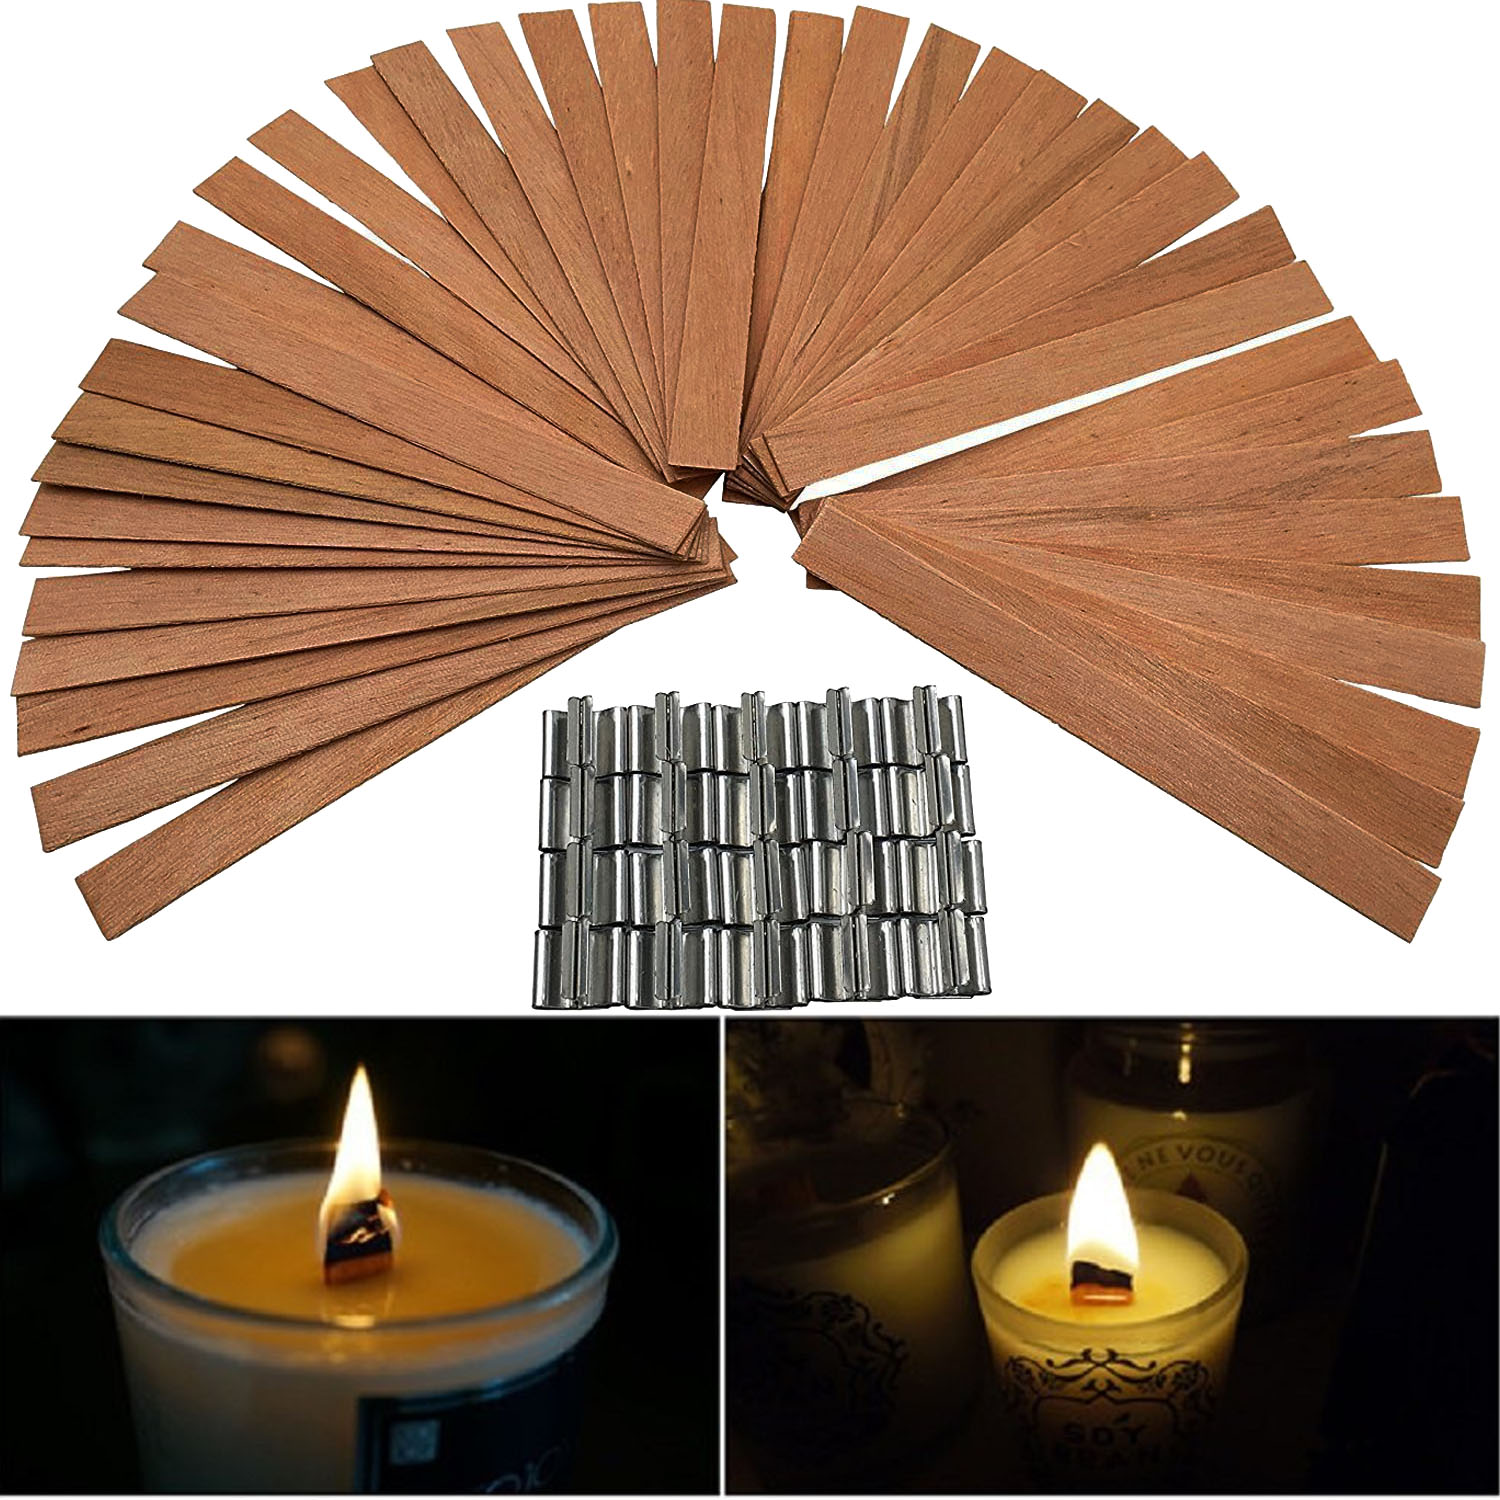 Wooden Candle Wicks Diy: 50 PCS 12.5 X 150mm Wood Candle Wicks With Sustainer Tab